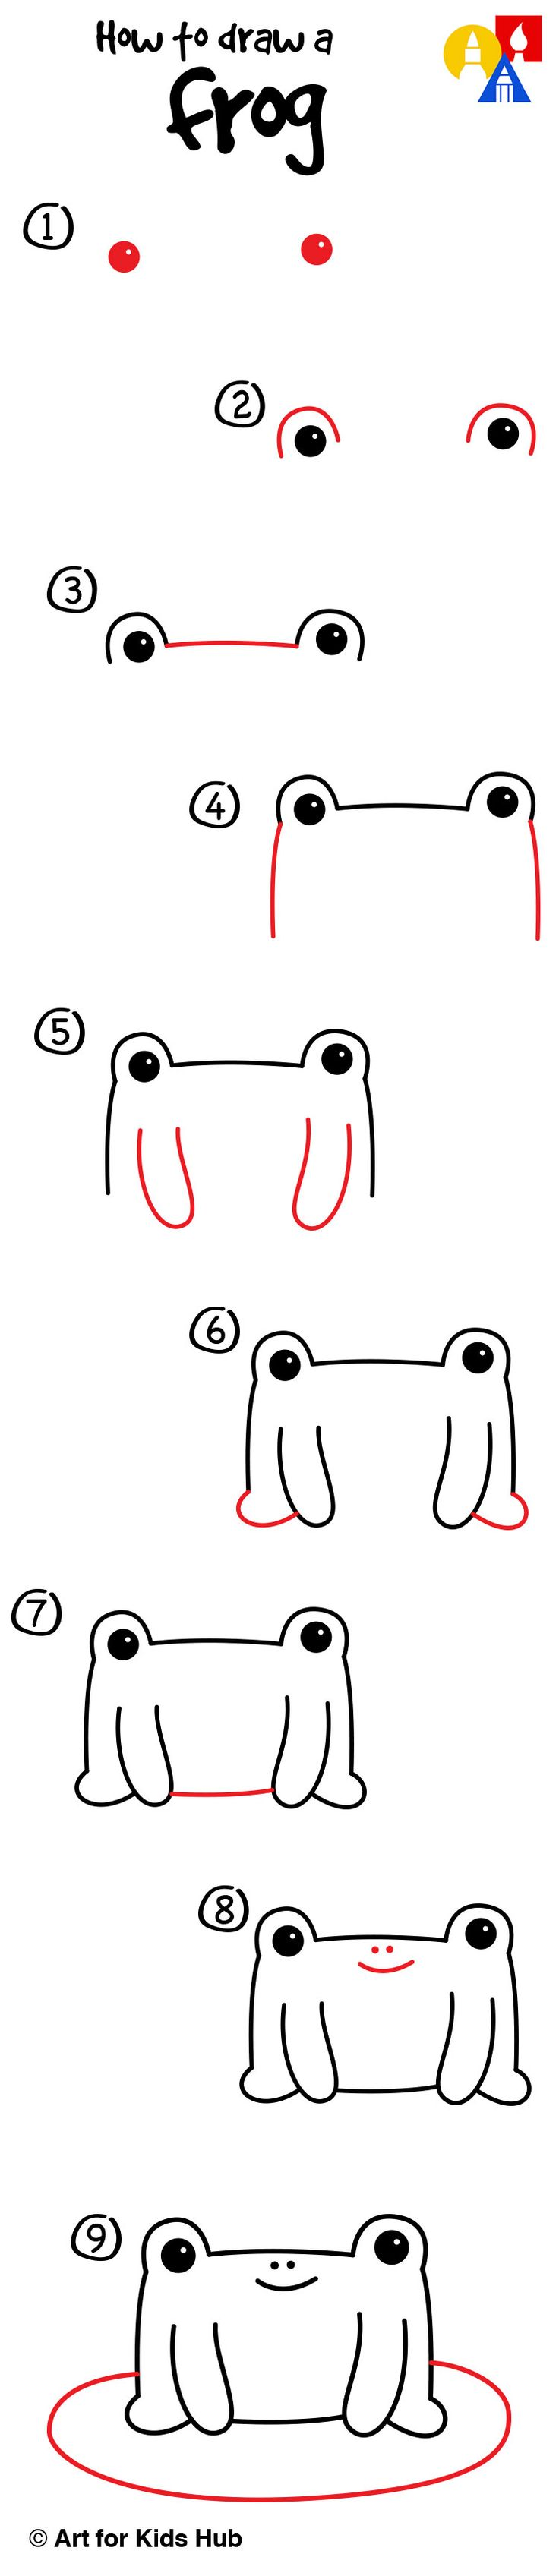 How to draw a simple cartoon frog!